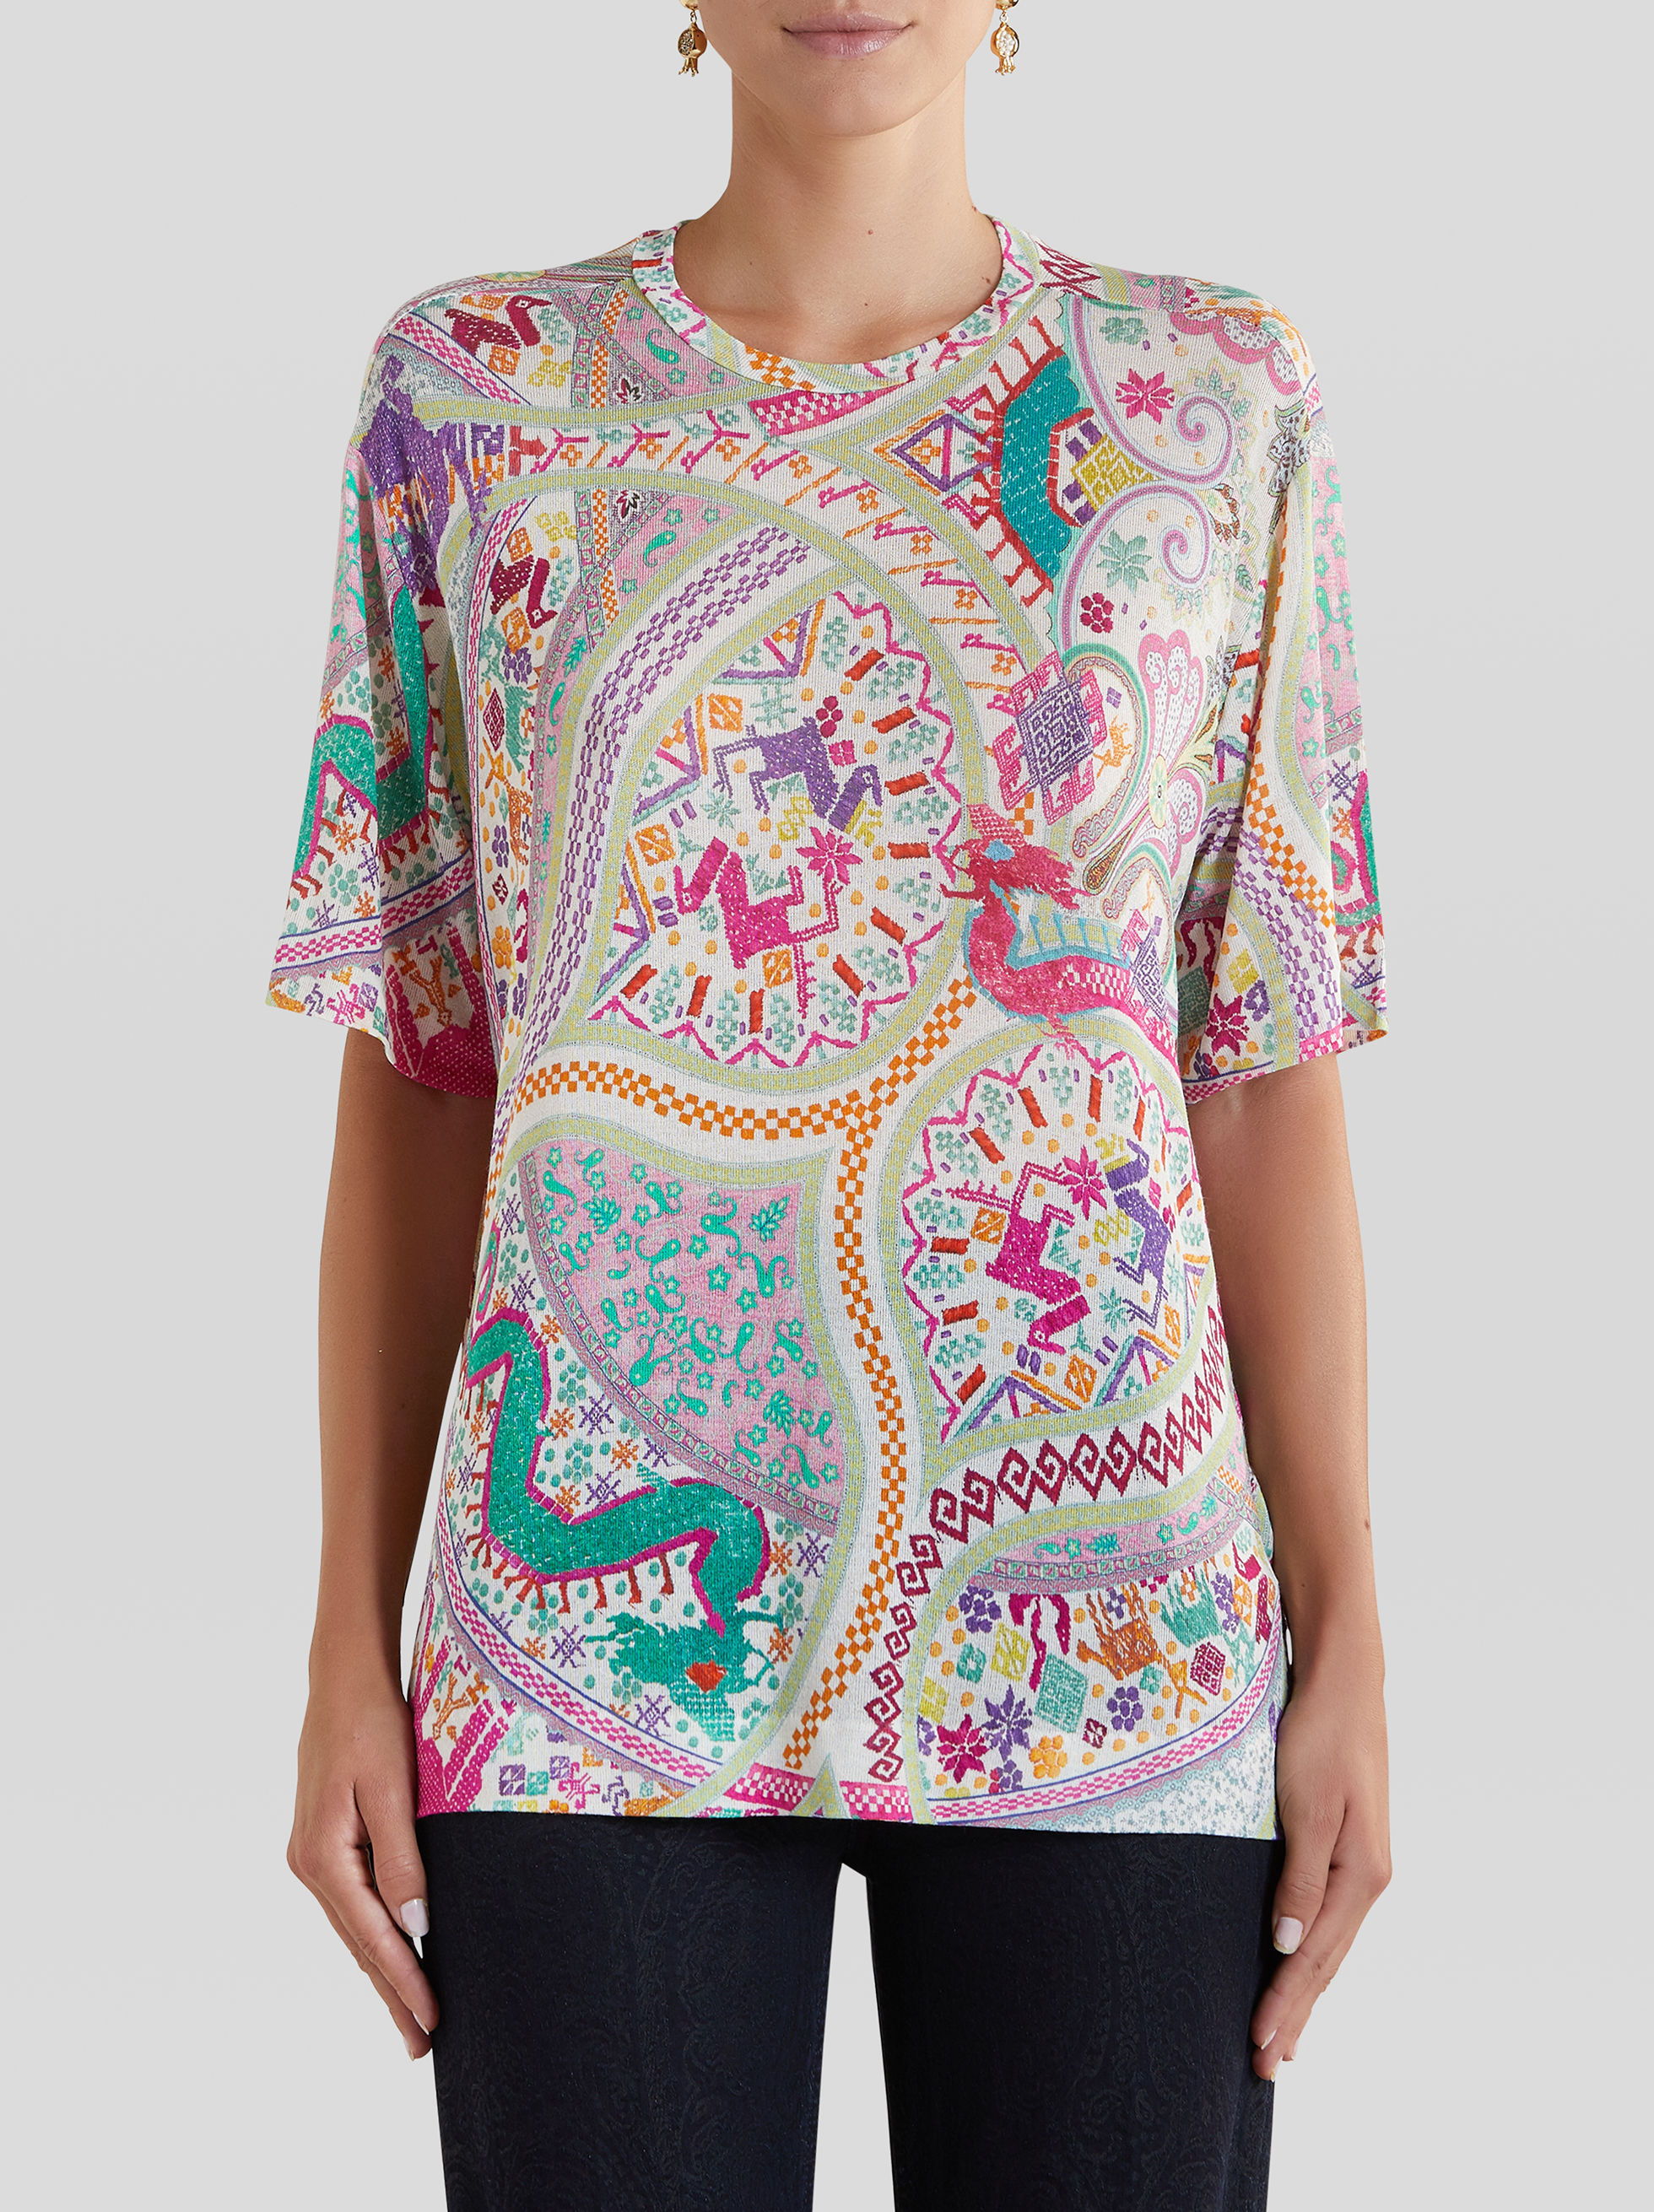 NAÏF EMBROIDERY-EFFECT PRINT T-SHIRT